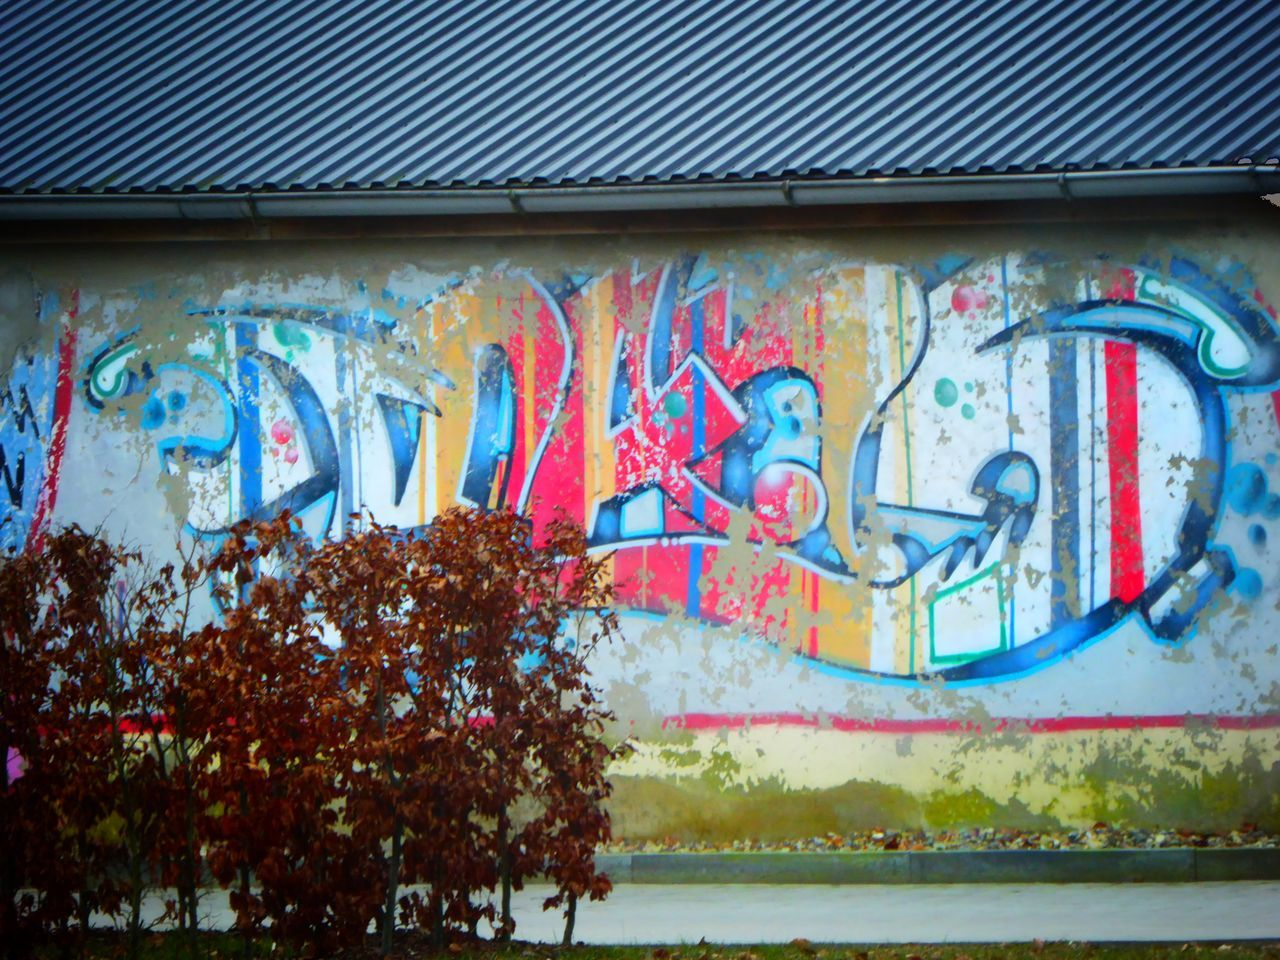 Graffiti Creativity Multi Colored Wall - Building Feature Art And Craft Spray Paint No People Outdoors Day From My Point Of View Outdoorphotography Outdoor Beauty Eyeem Photography Eyeemphotography StillLifePhotography Eyeemphoto Art Photography Art Art Gallery